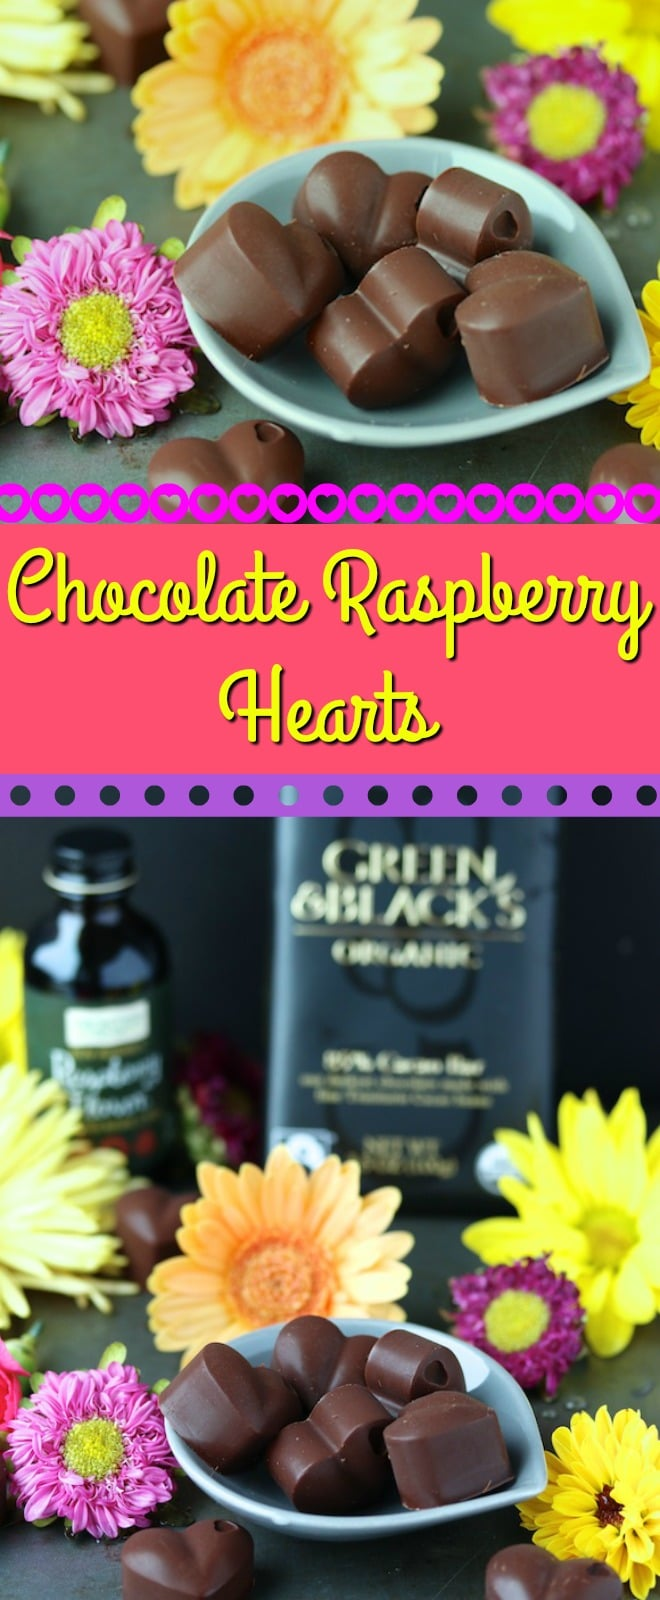 Homemade Chocolate Raspberry Hearts for a sweet treat. These are dairy- and gluten-free, and are paleo and vegan. #valentinesday #diy #homemade #chocolates #veganrecipe #paleodiet